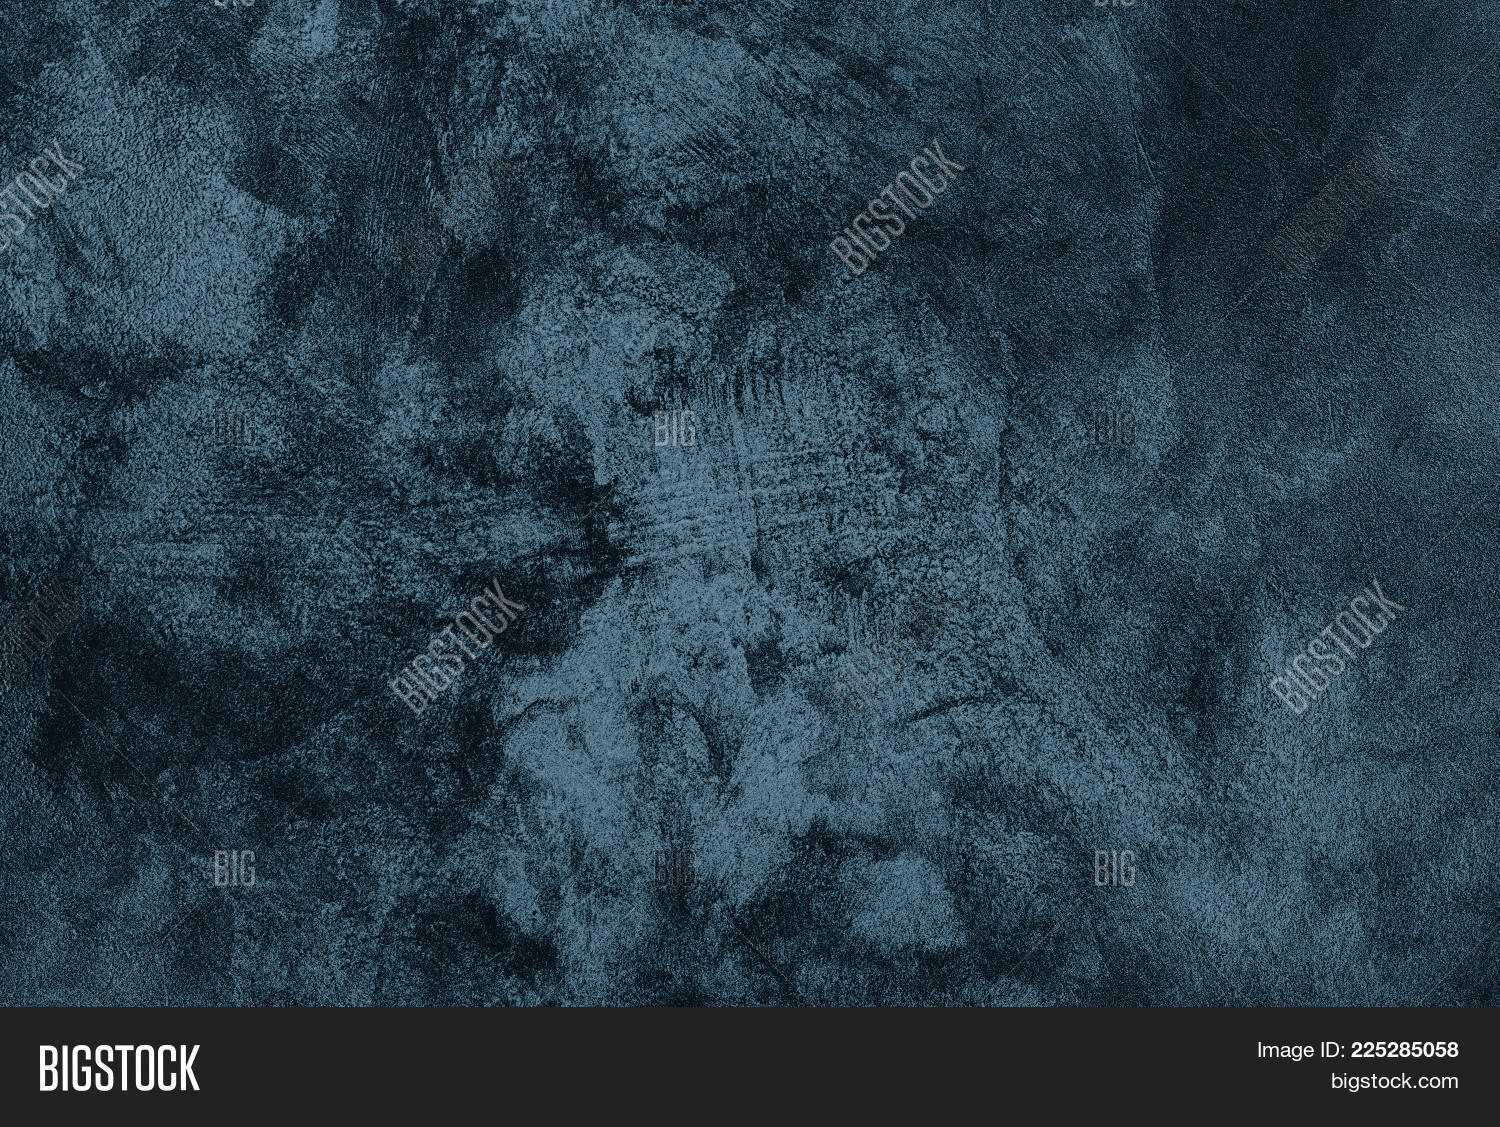 Abstract Grunge Image Photo Free Trial Bigstock